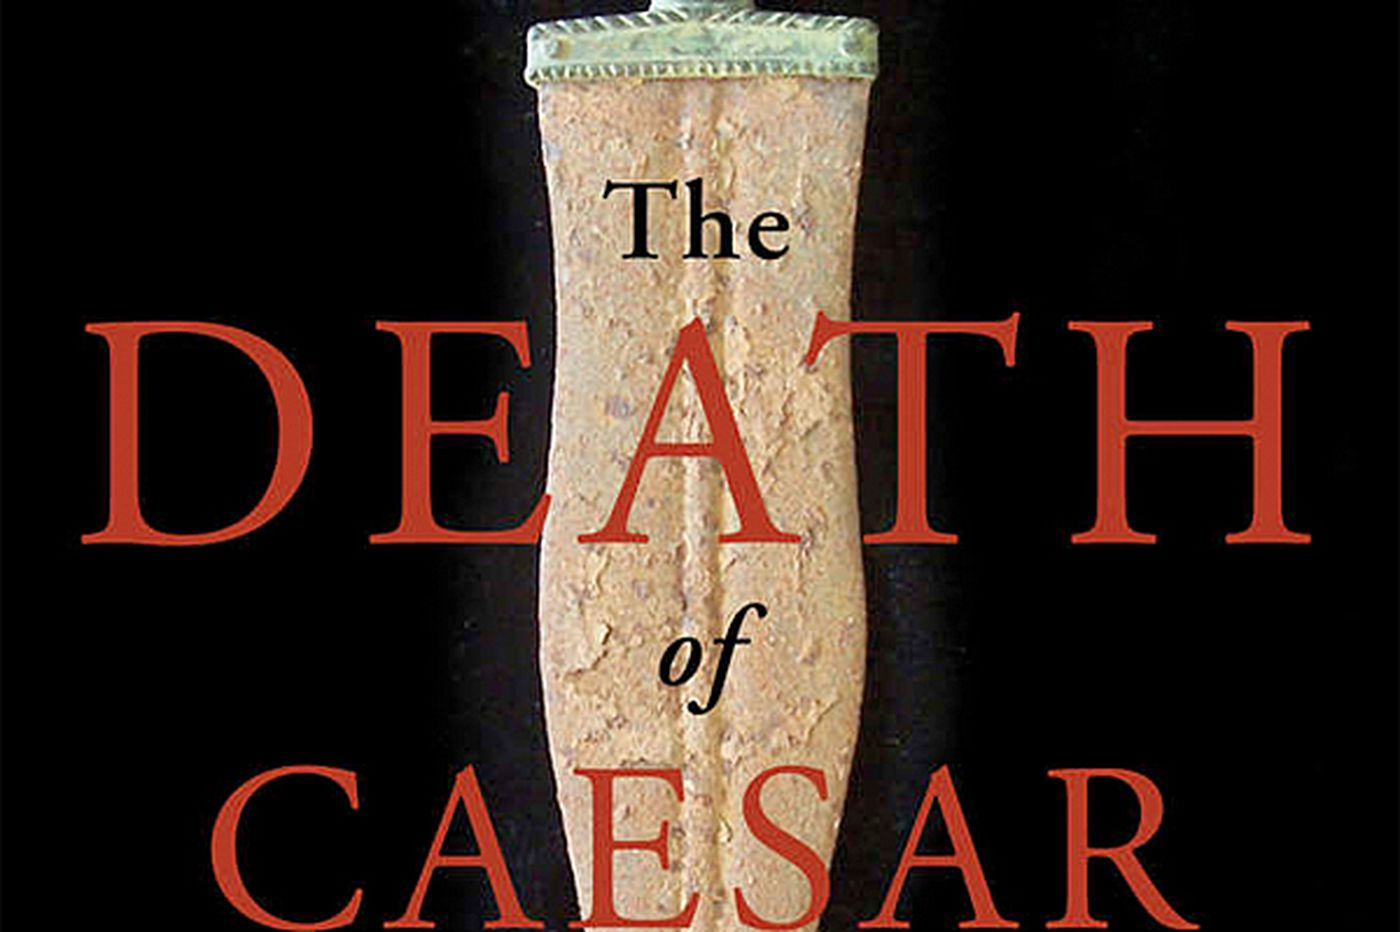 Barry Strauss' storytelling drives 'Death of Caesar'